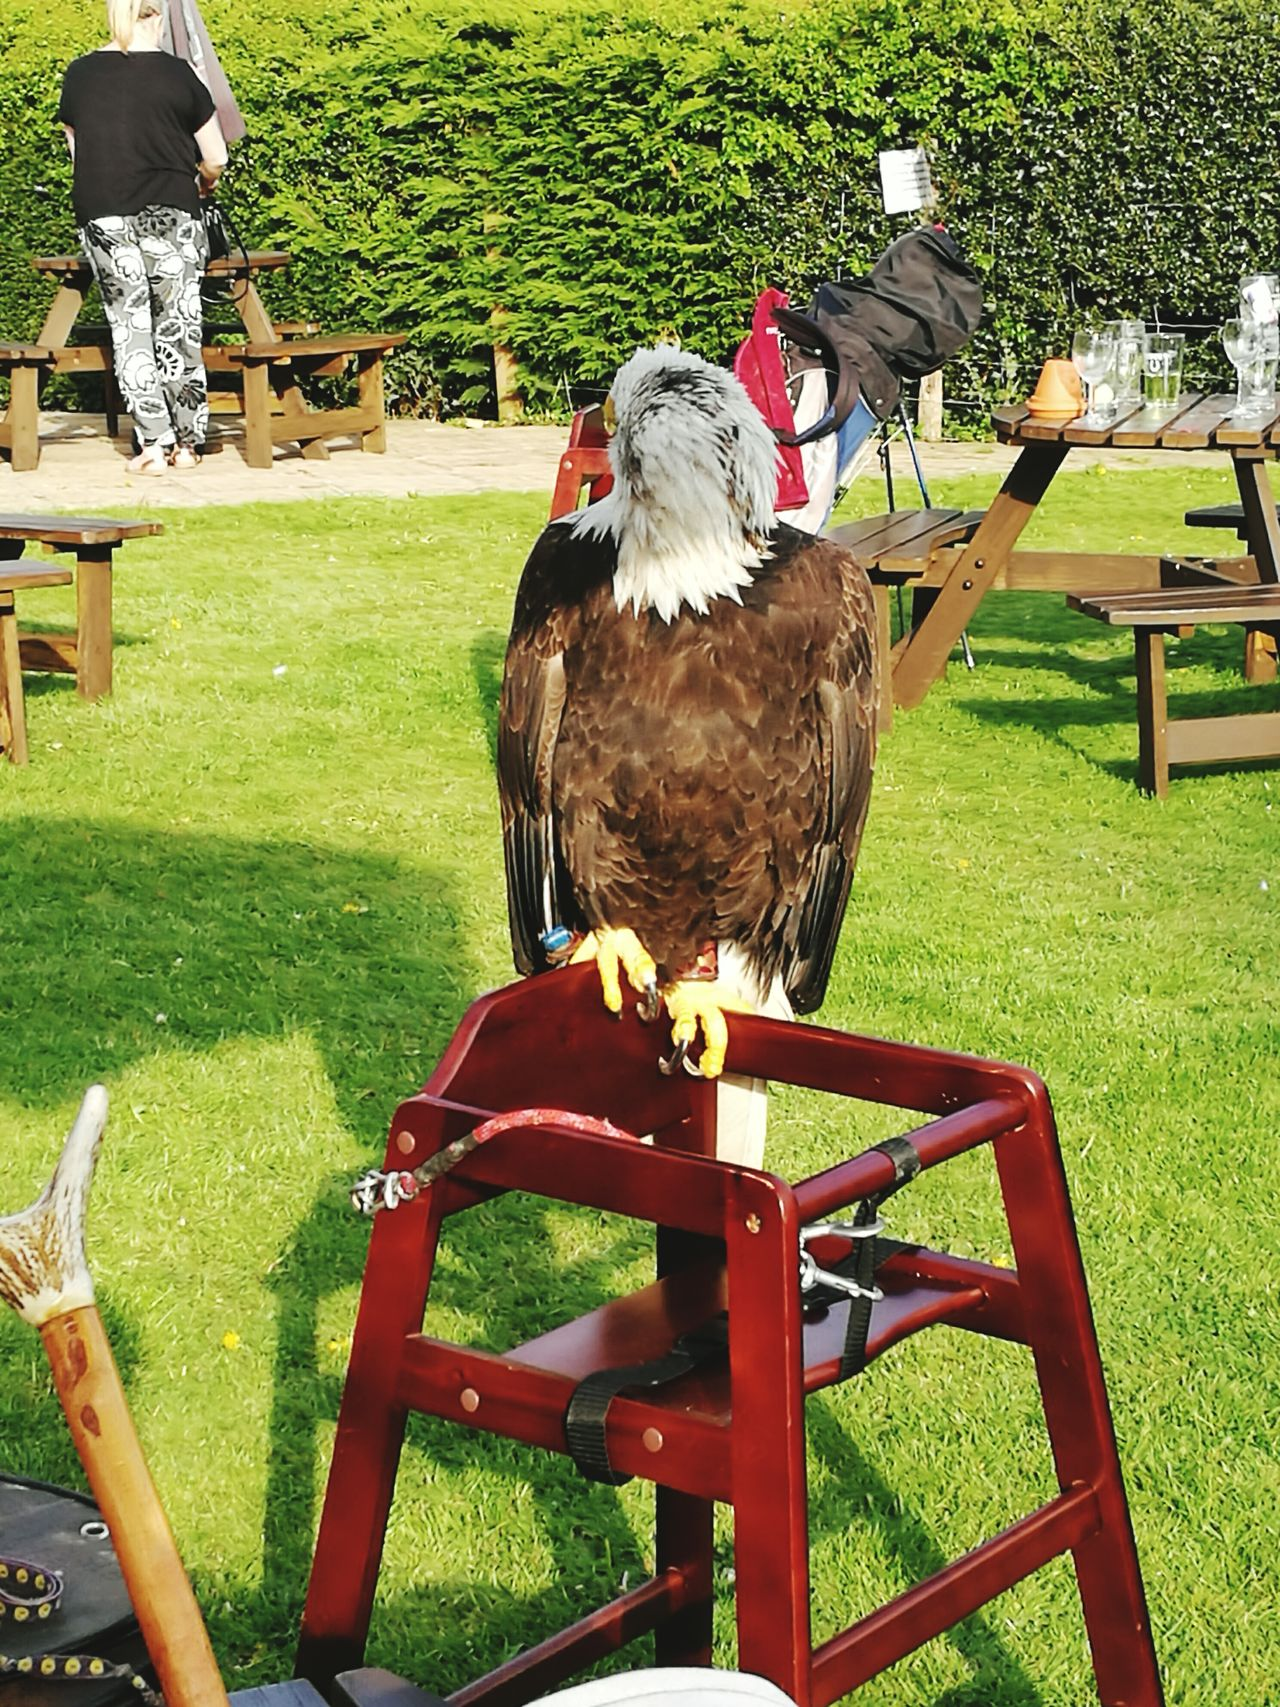 American bald eagle sitting on a highchair facing the other way Americanbaldeagle Bald Eagle Pub Highchair Large Eagle Spring Day